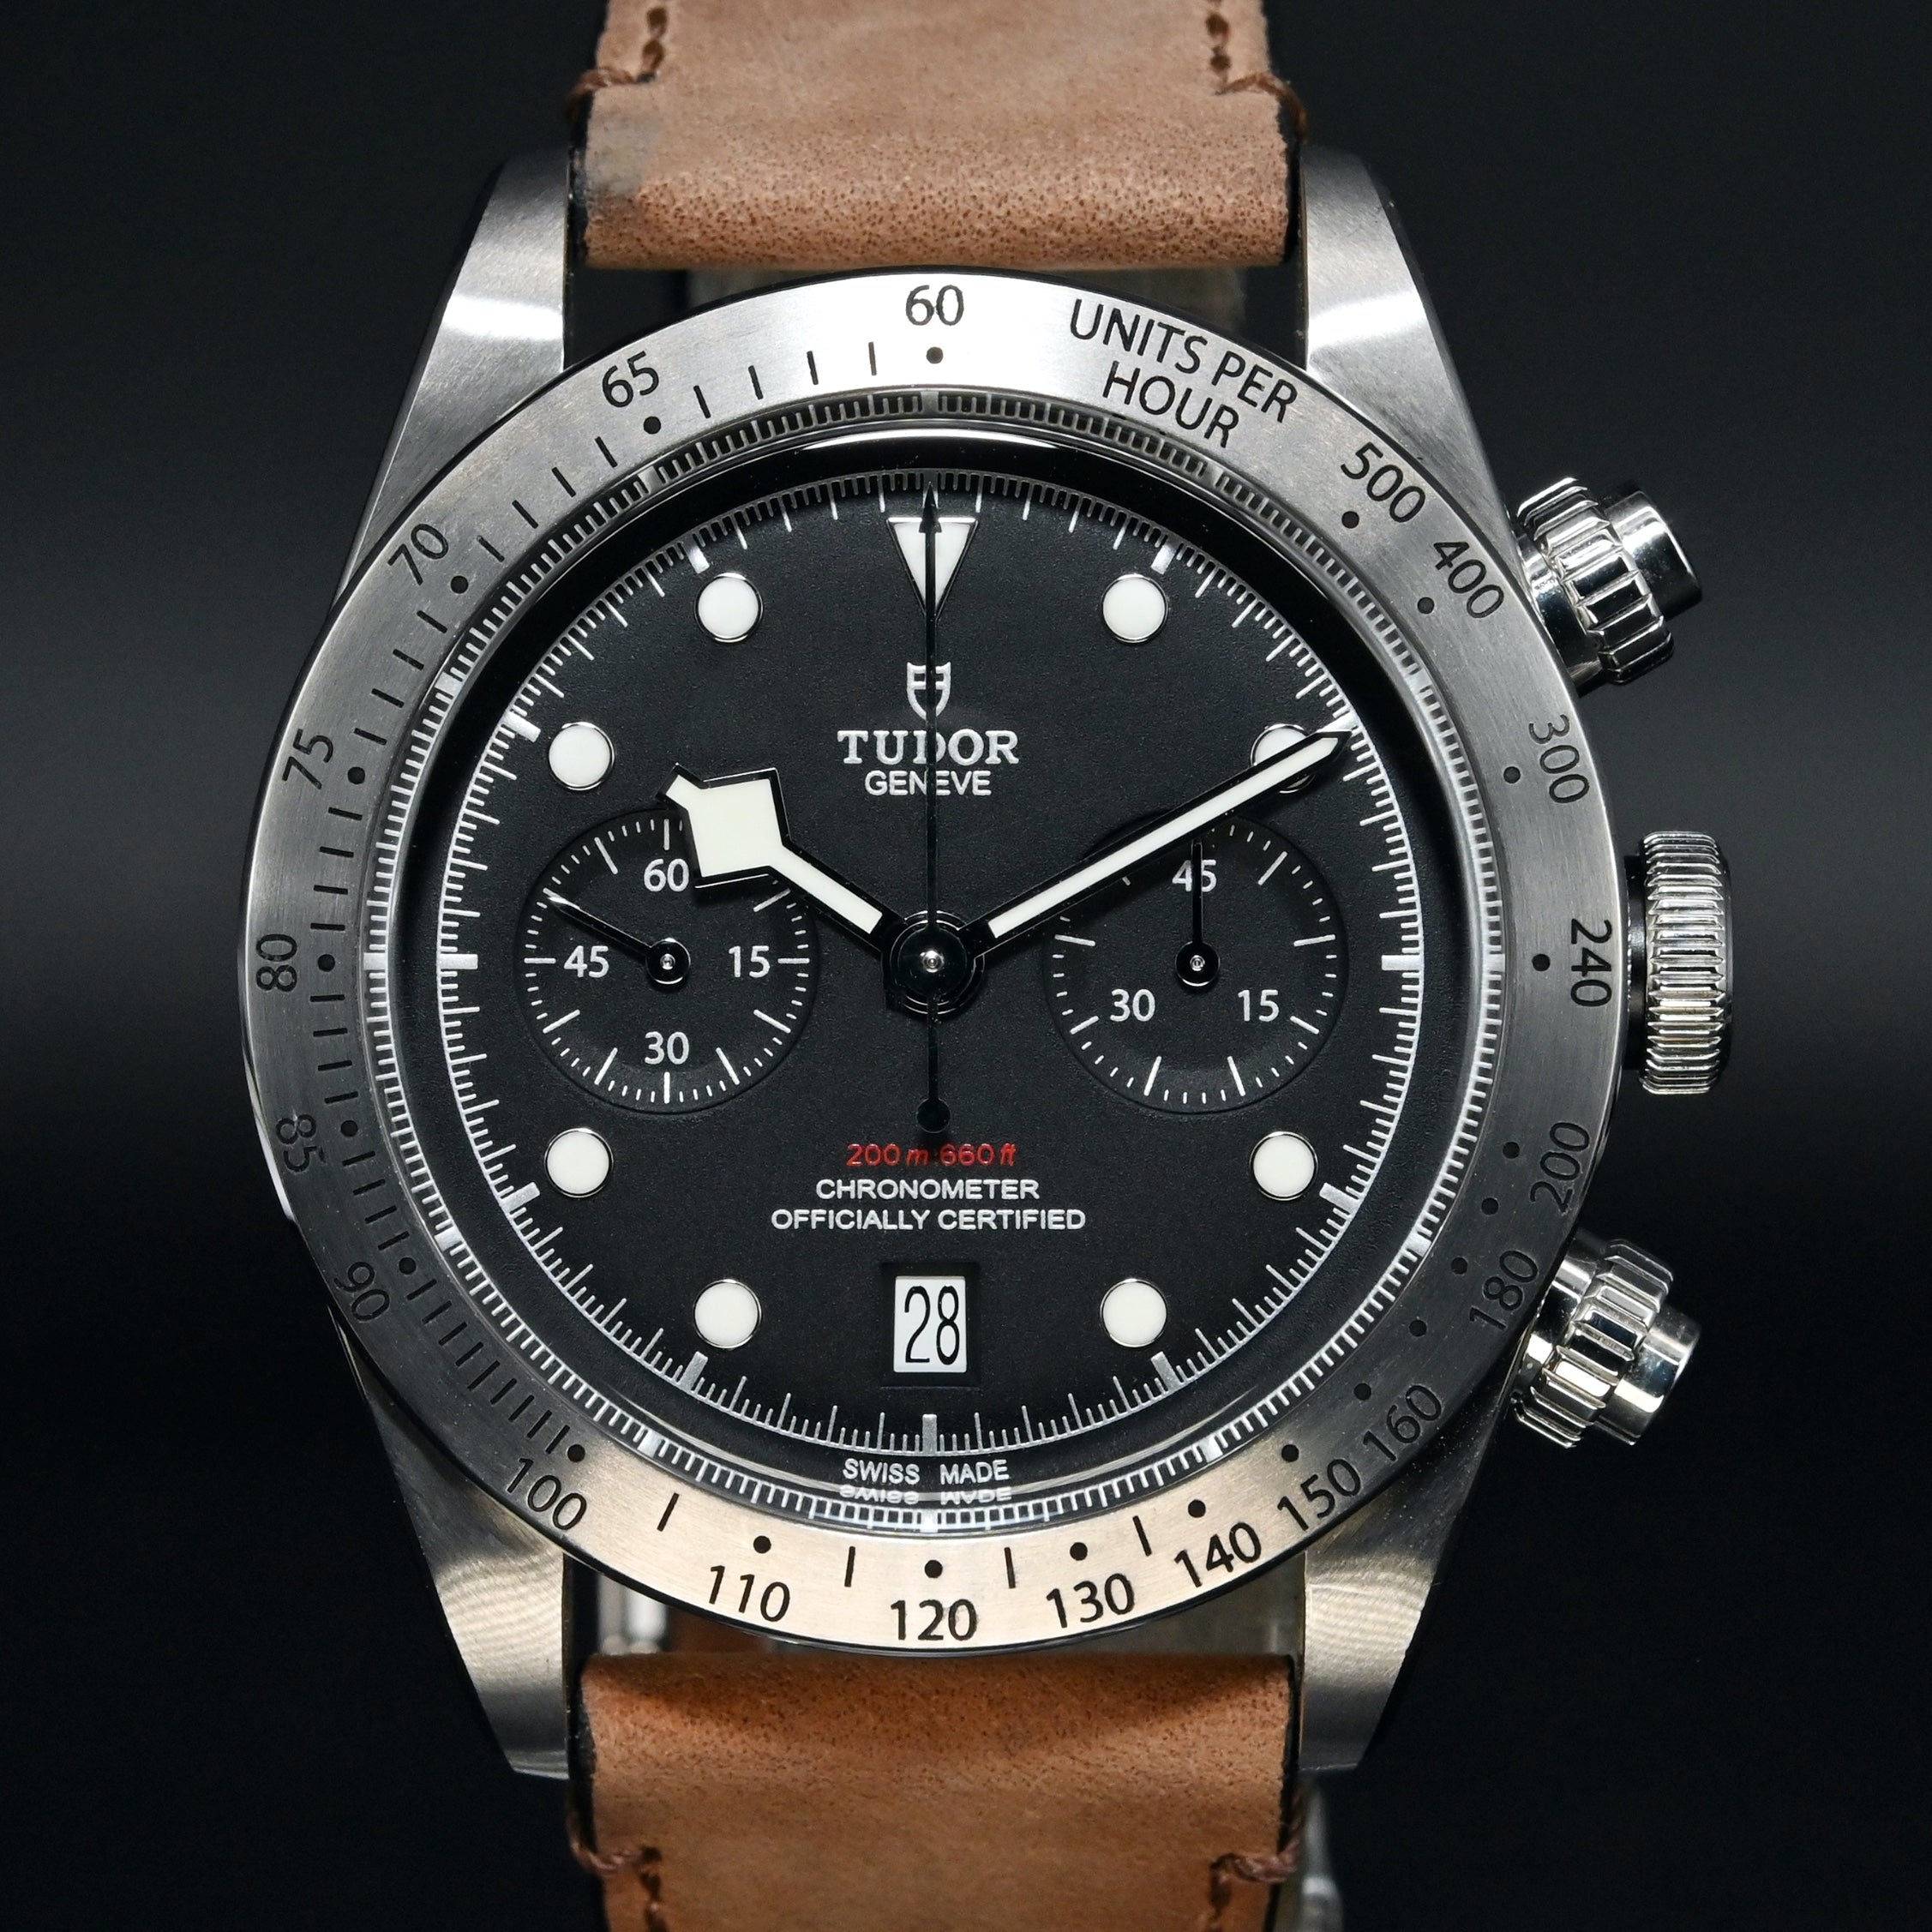 [Brand New Watch] Tudor Heritage Black Bay Chrono 41mm 79350 (Leather Strap)